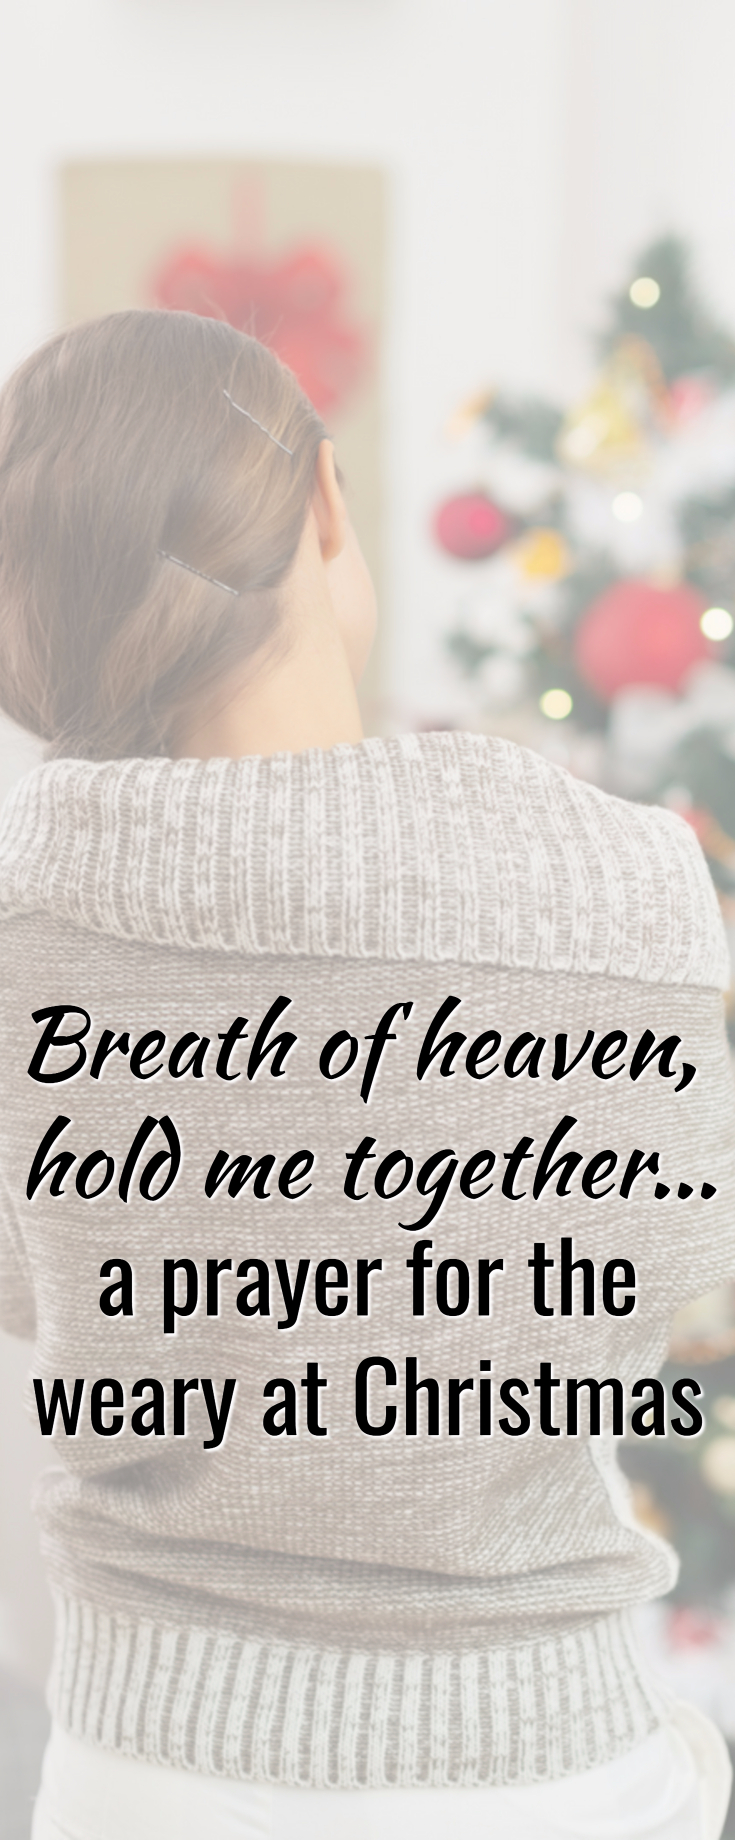 """""""Breath of heaven, hold me together..."""" a prayer for the weary at Christmas"""